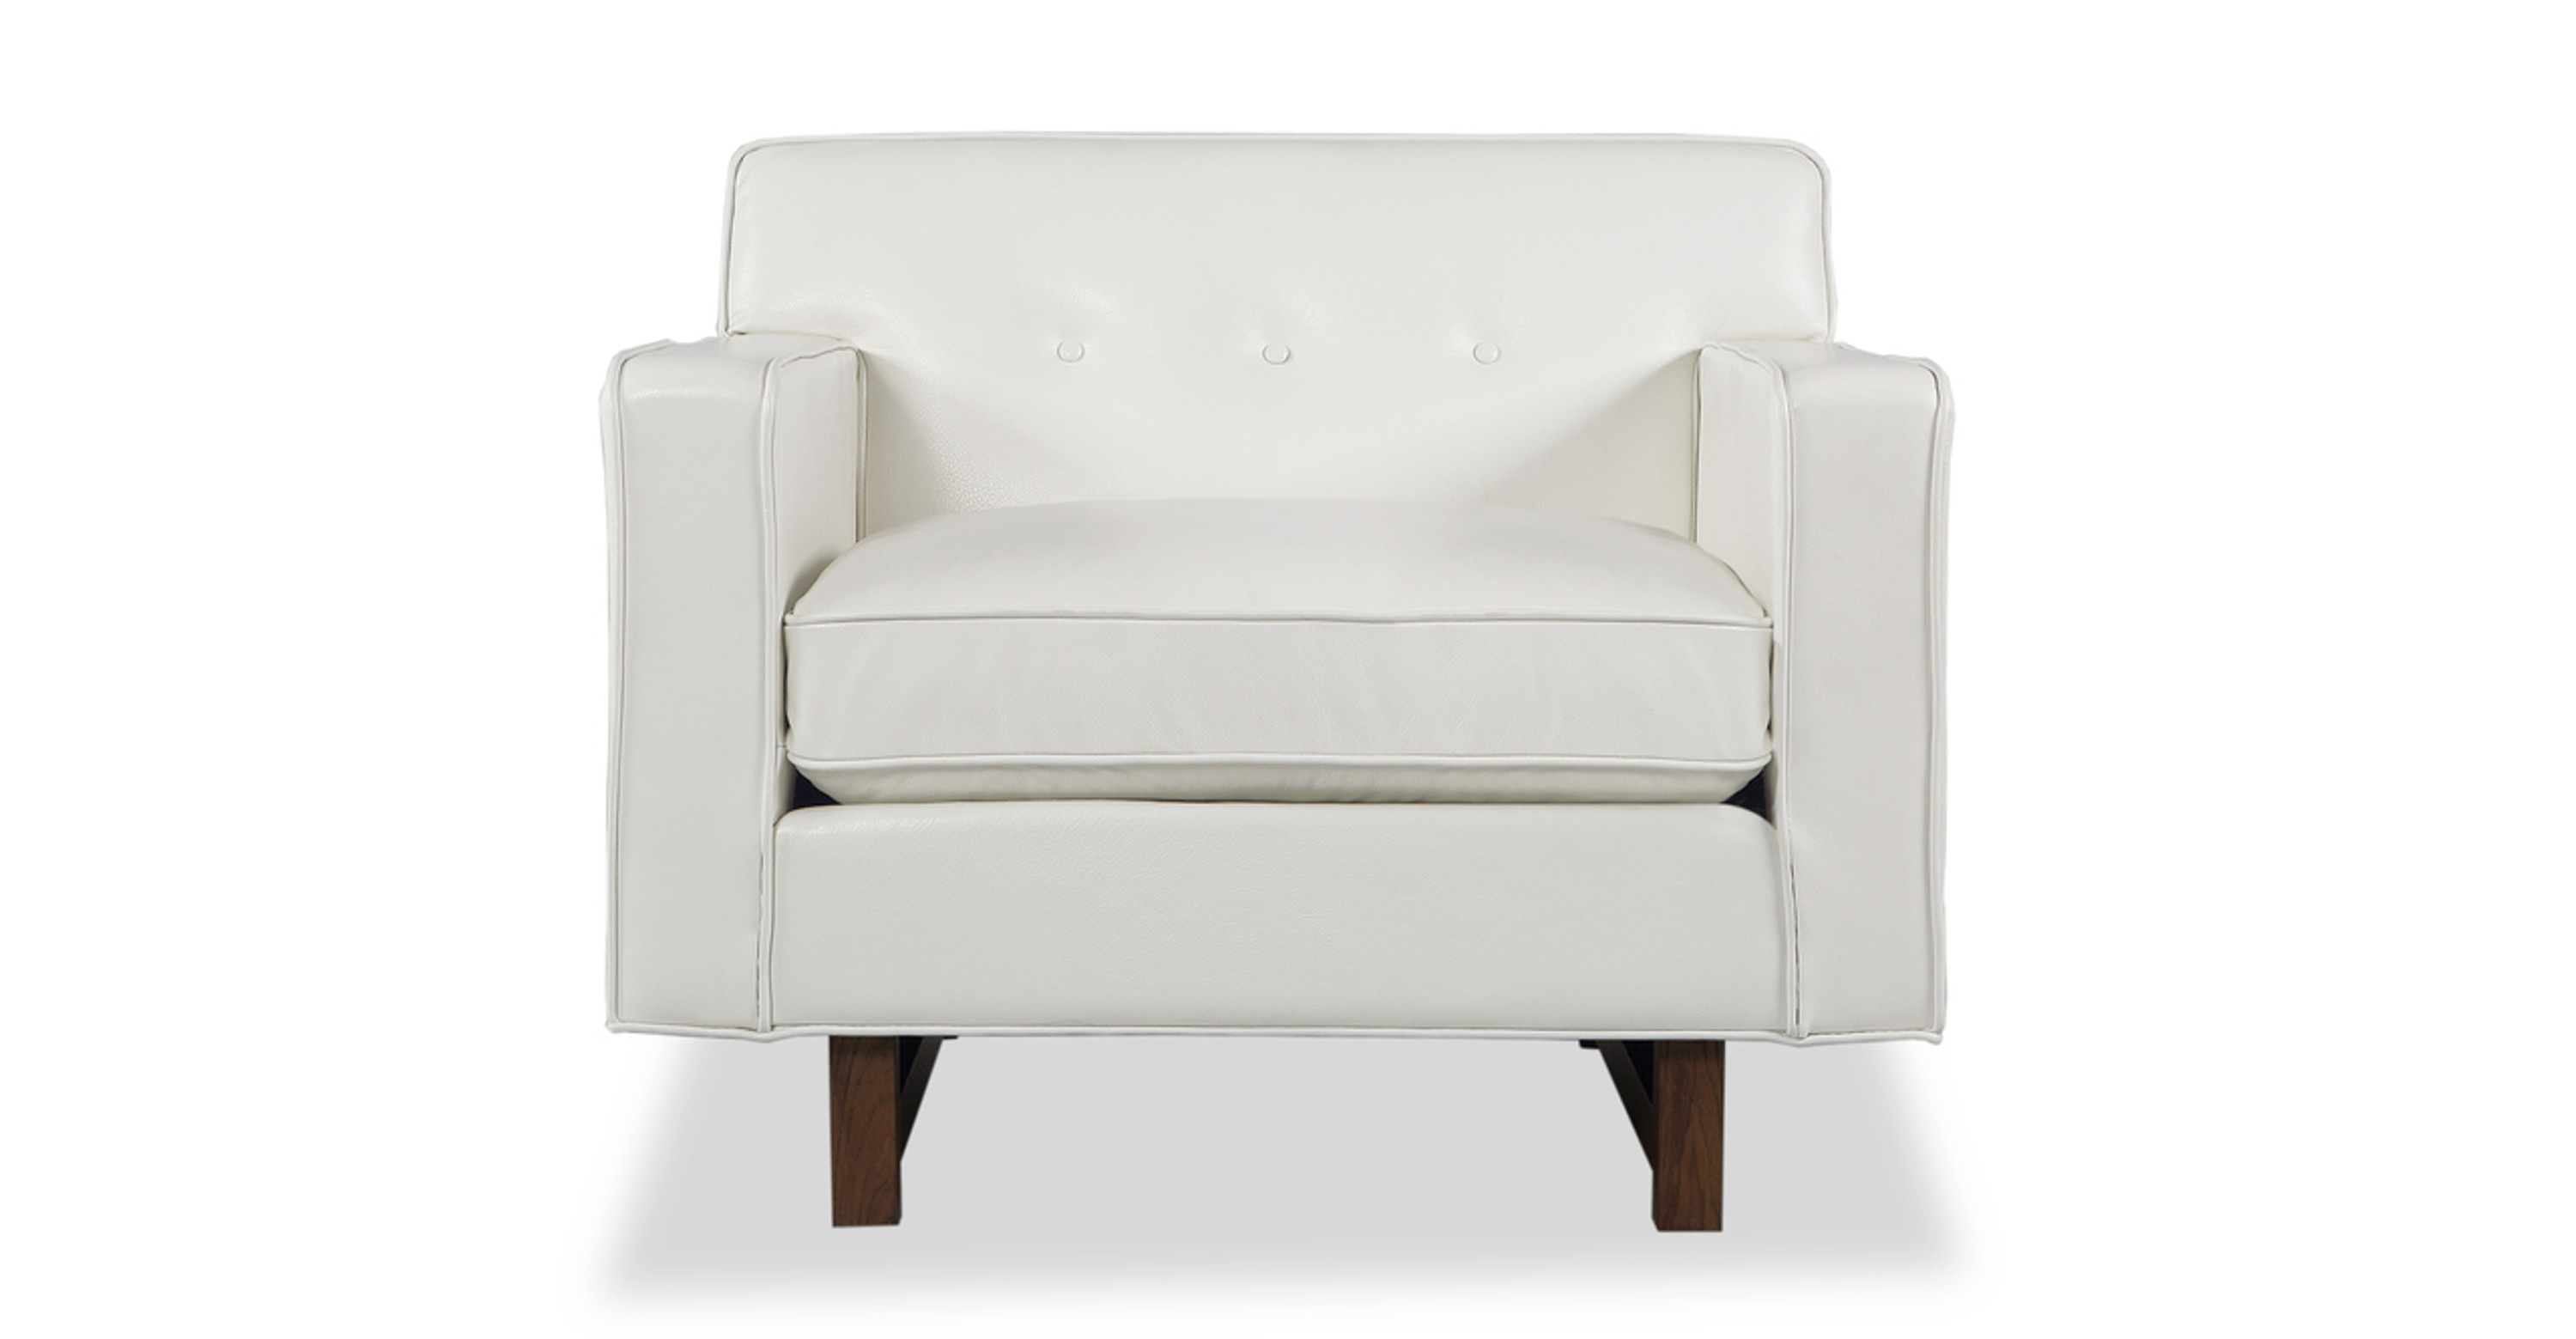 Awe Inspiring Kennedy Chair White Aniline Leather Pdpeps Interior Chair Design Pdpepsorg